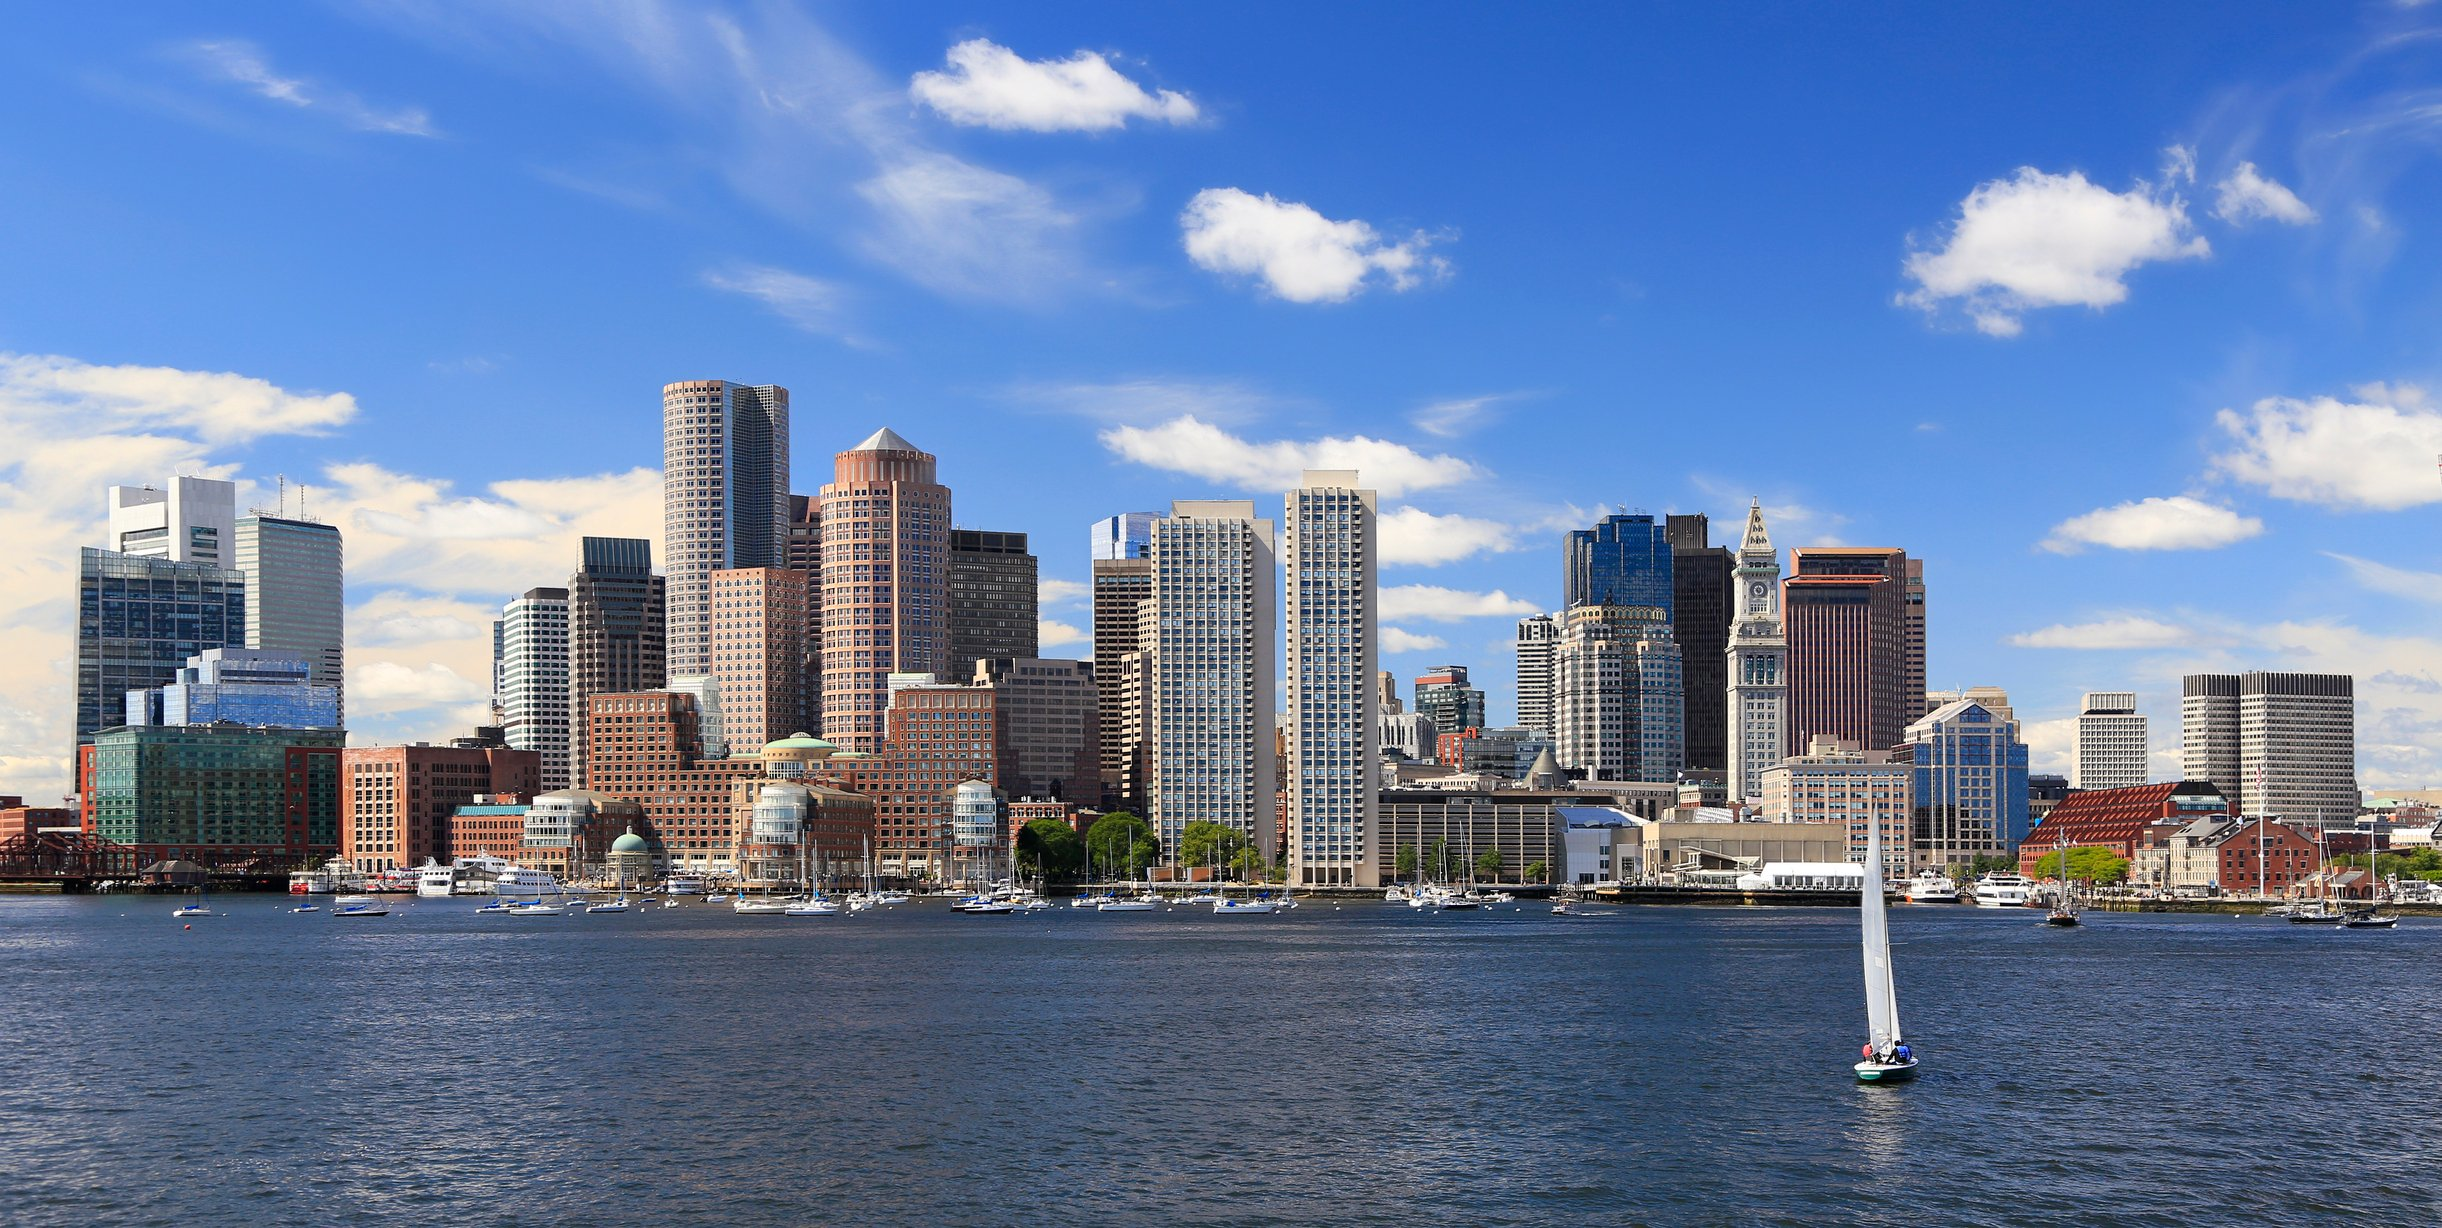 scenic view water and buildings downtown in  Boston, Massachusetts